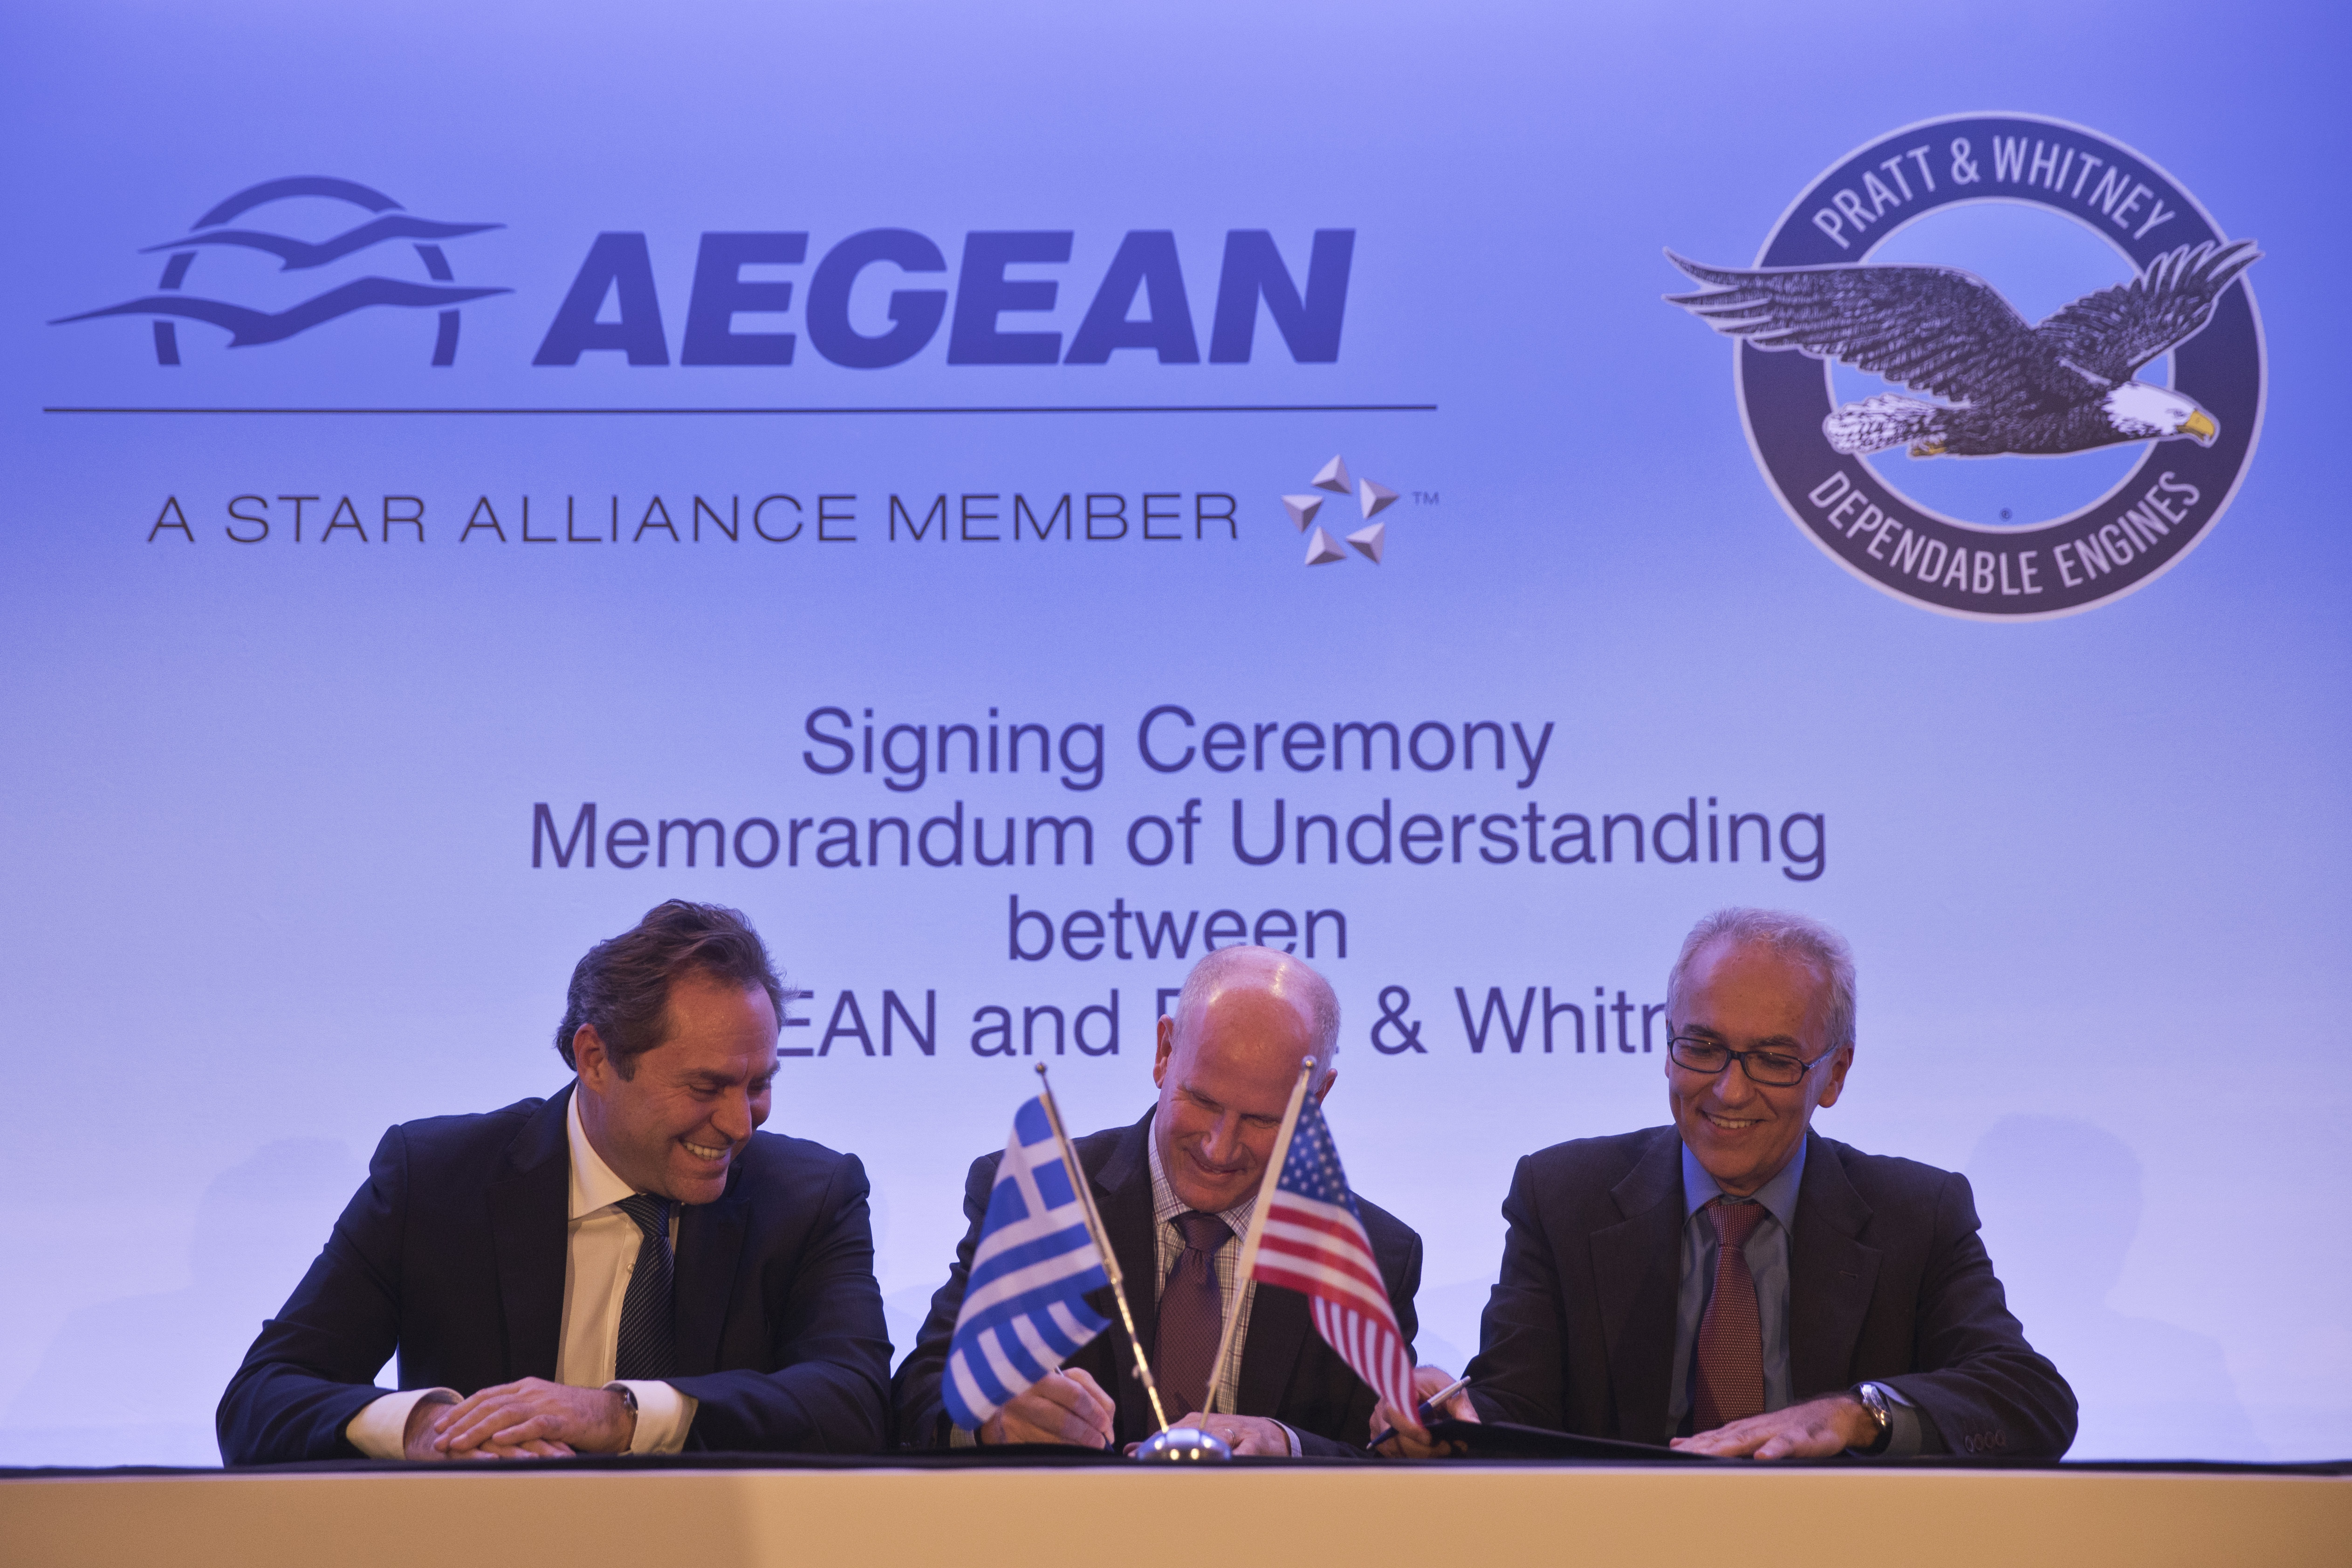 Chairman of Aegean Airlines Eftychios Vassilakis, left, Rick Deurloo Senior Vice President - Sales, Marketing and Customer Support at Pratt & Whitney and Aegean Airlines CEO Dimitrios Gerogiannis, right, sign a memorandum of understanding for the purchase of up to 130 new Pratt & Whitney engines for the Greek company's new Airbus passenger jets in Athens, on Wednesday, Dec. 5, 2018. The deal, once concluded, is expected to be worth up to US dollars 1.5 billion. (AP Photo/Petros Giannakouris)